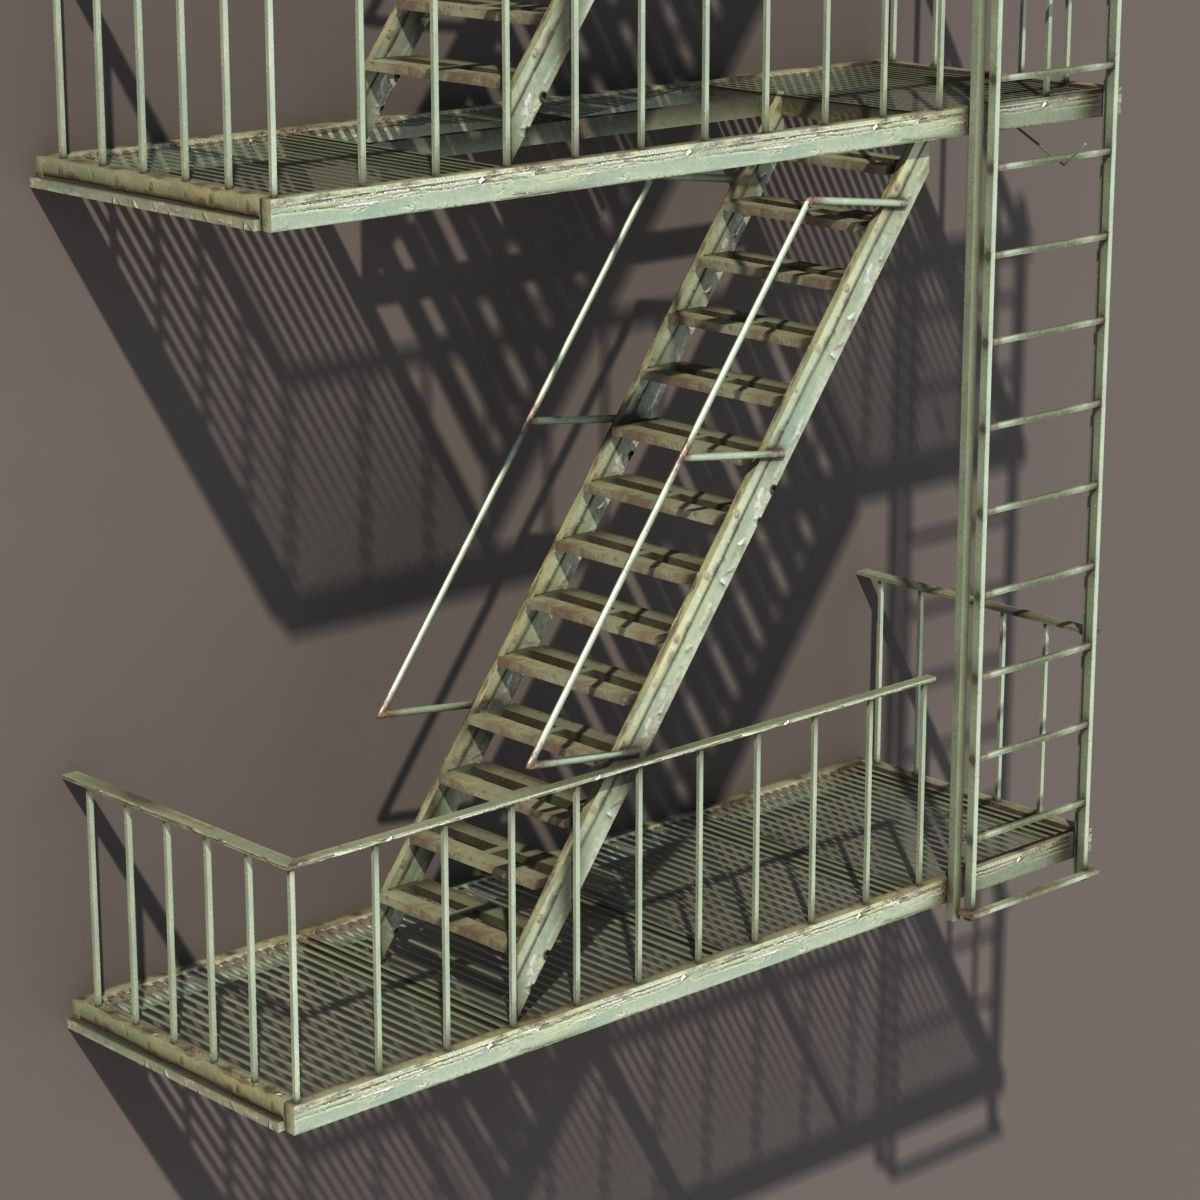 Fire Escape Stairs Low Poly 3d Model Low Poly Obj 3ds Lwo Lw Lws Hrc ...